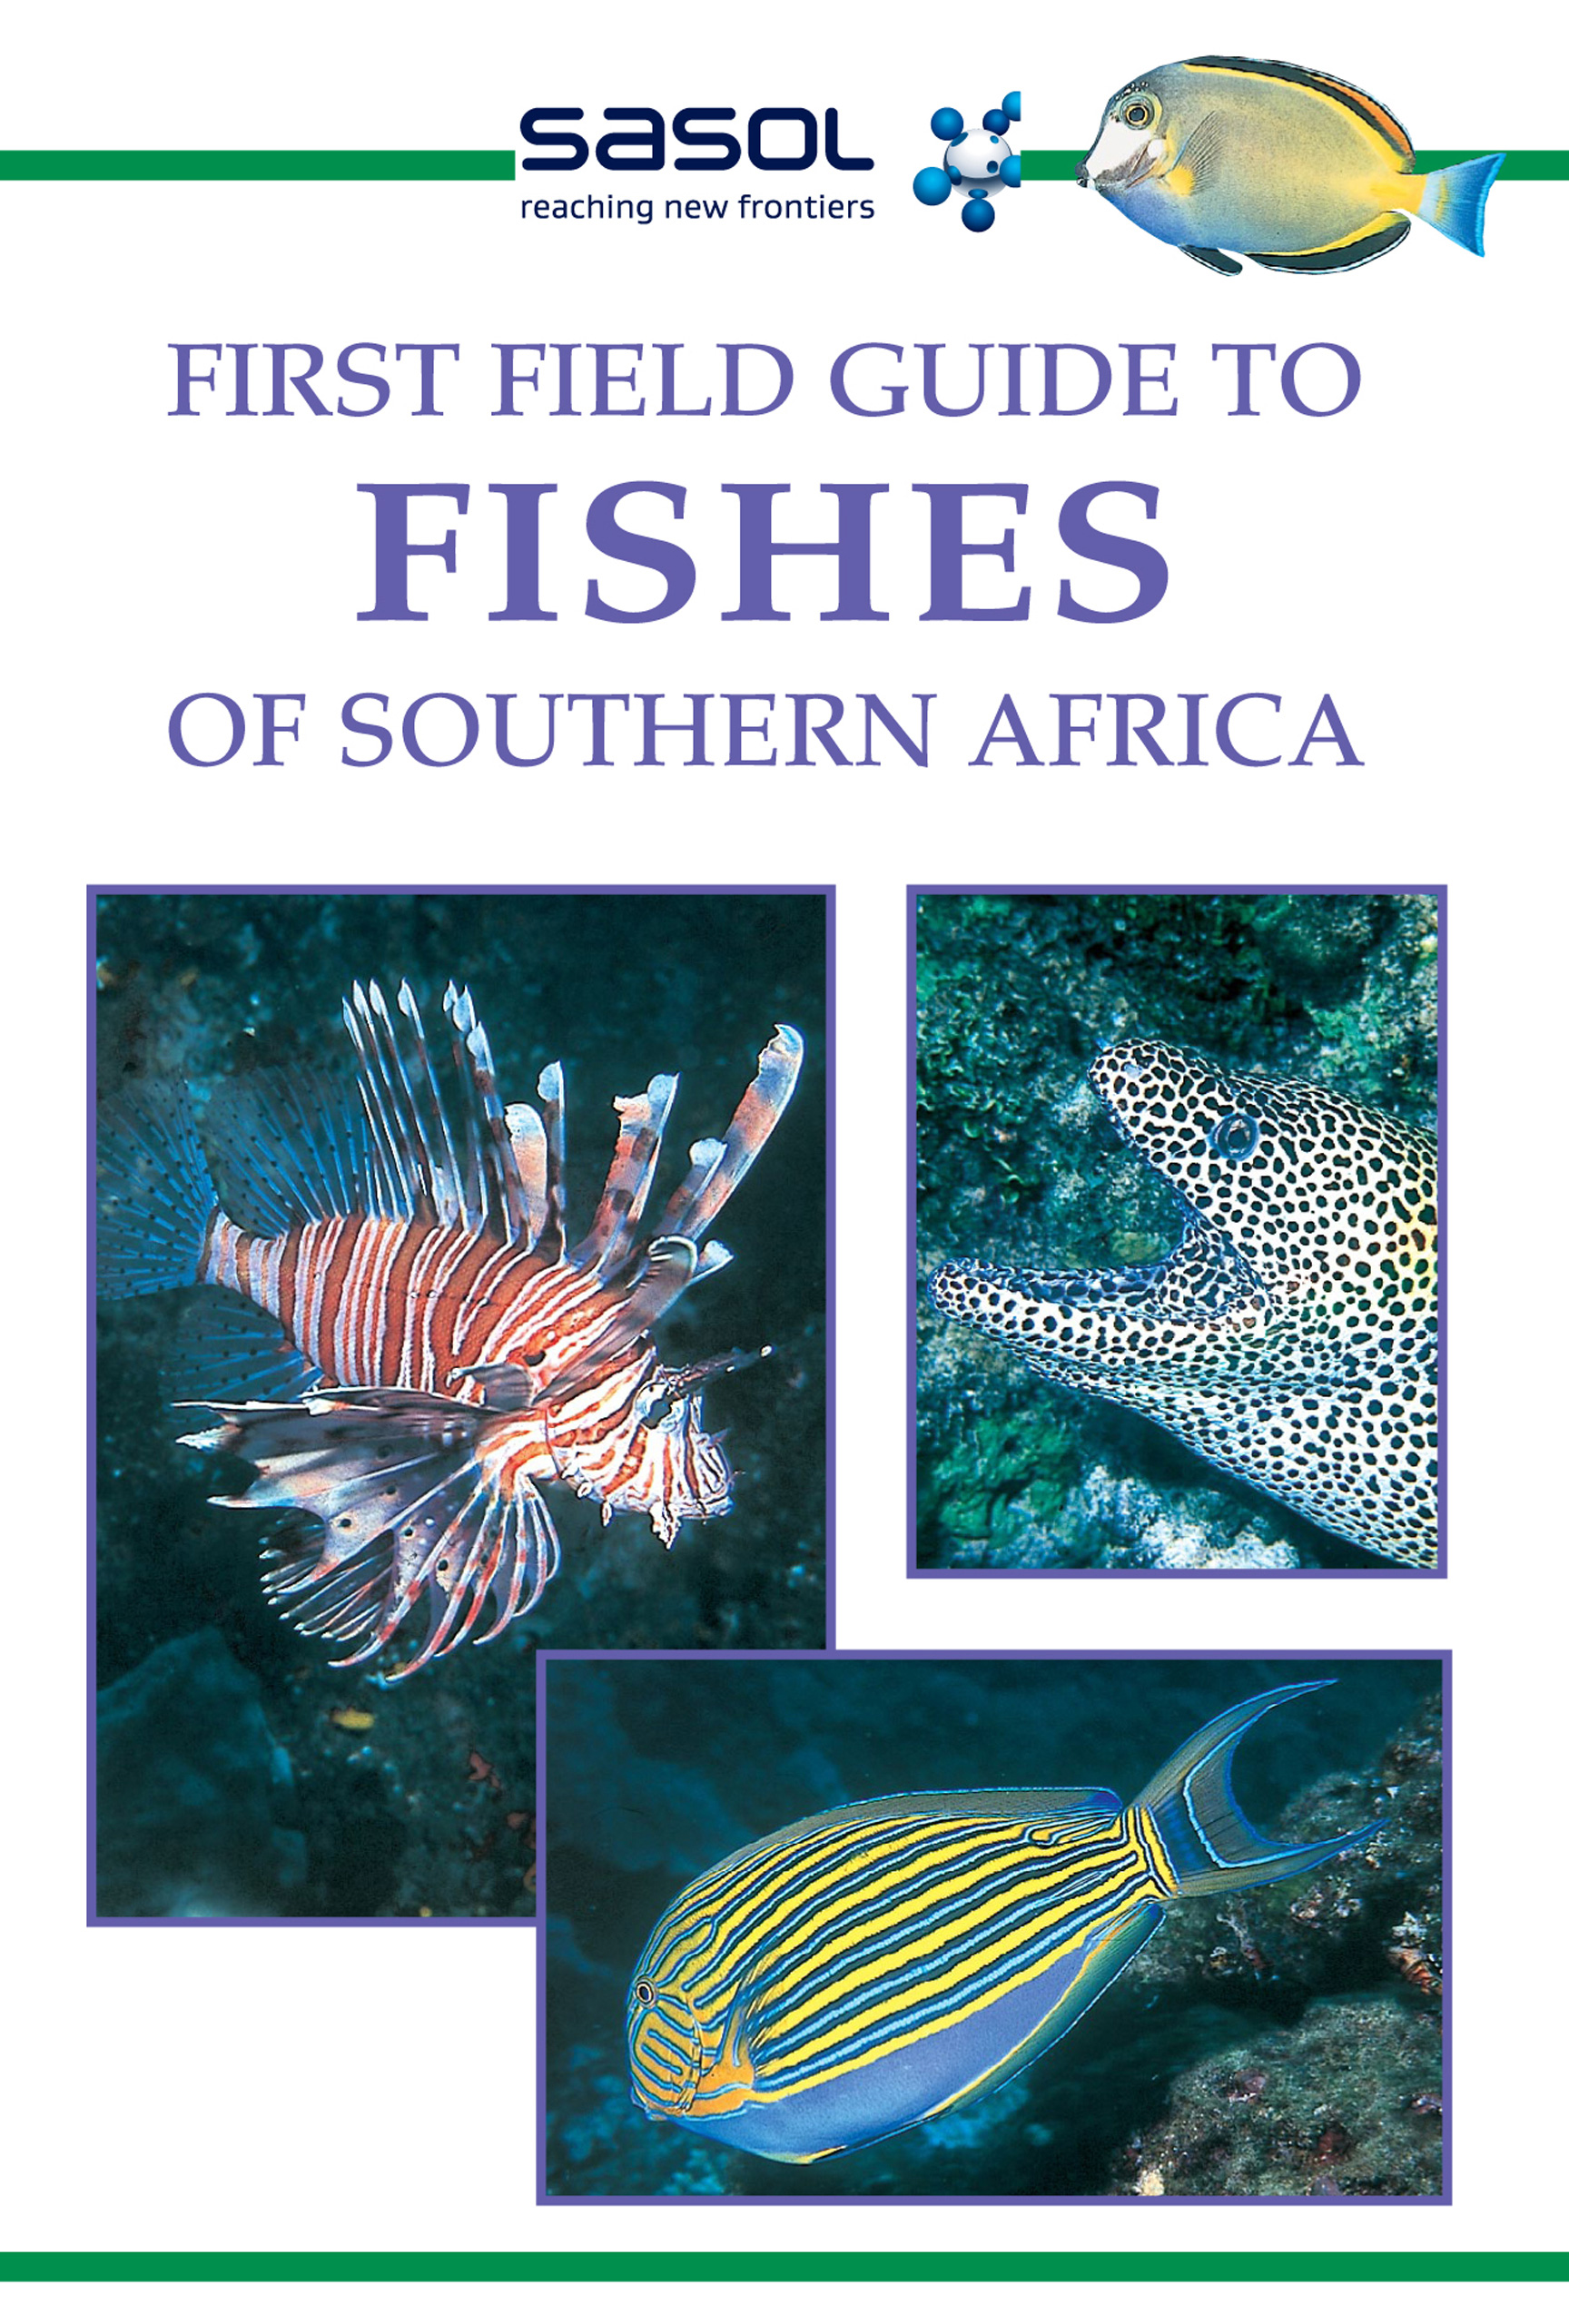 Picture of Sasol First Field Guide to Fishes of Southern Africa